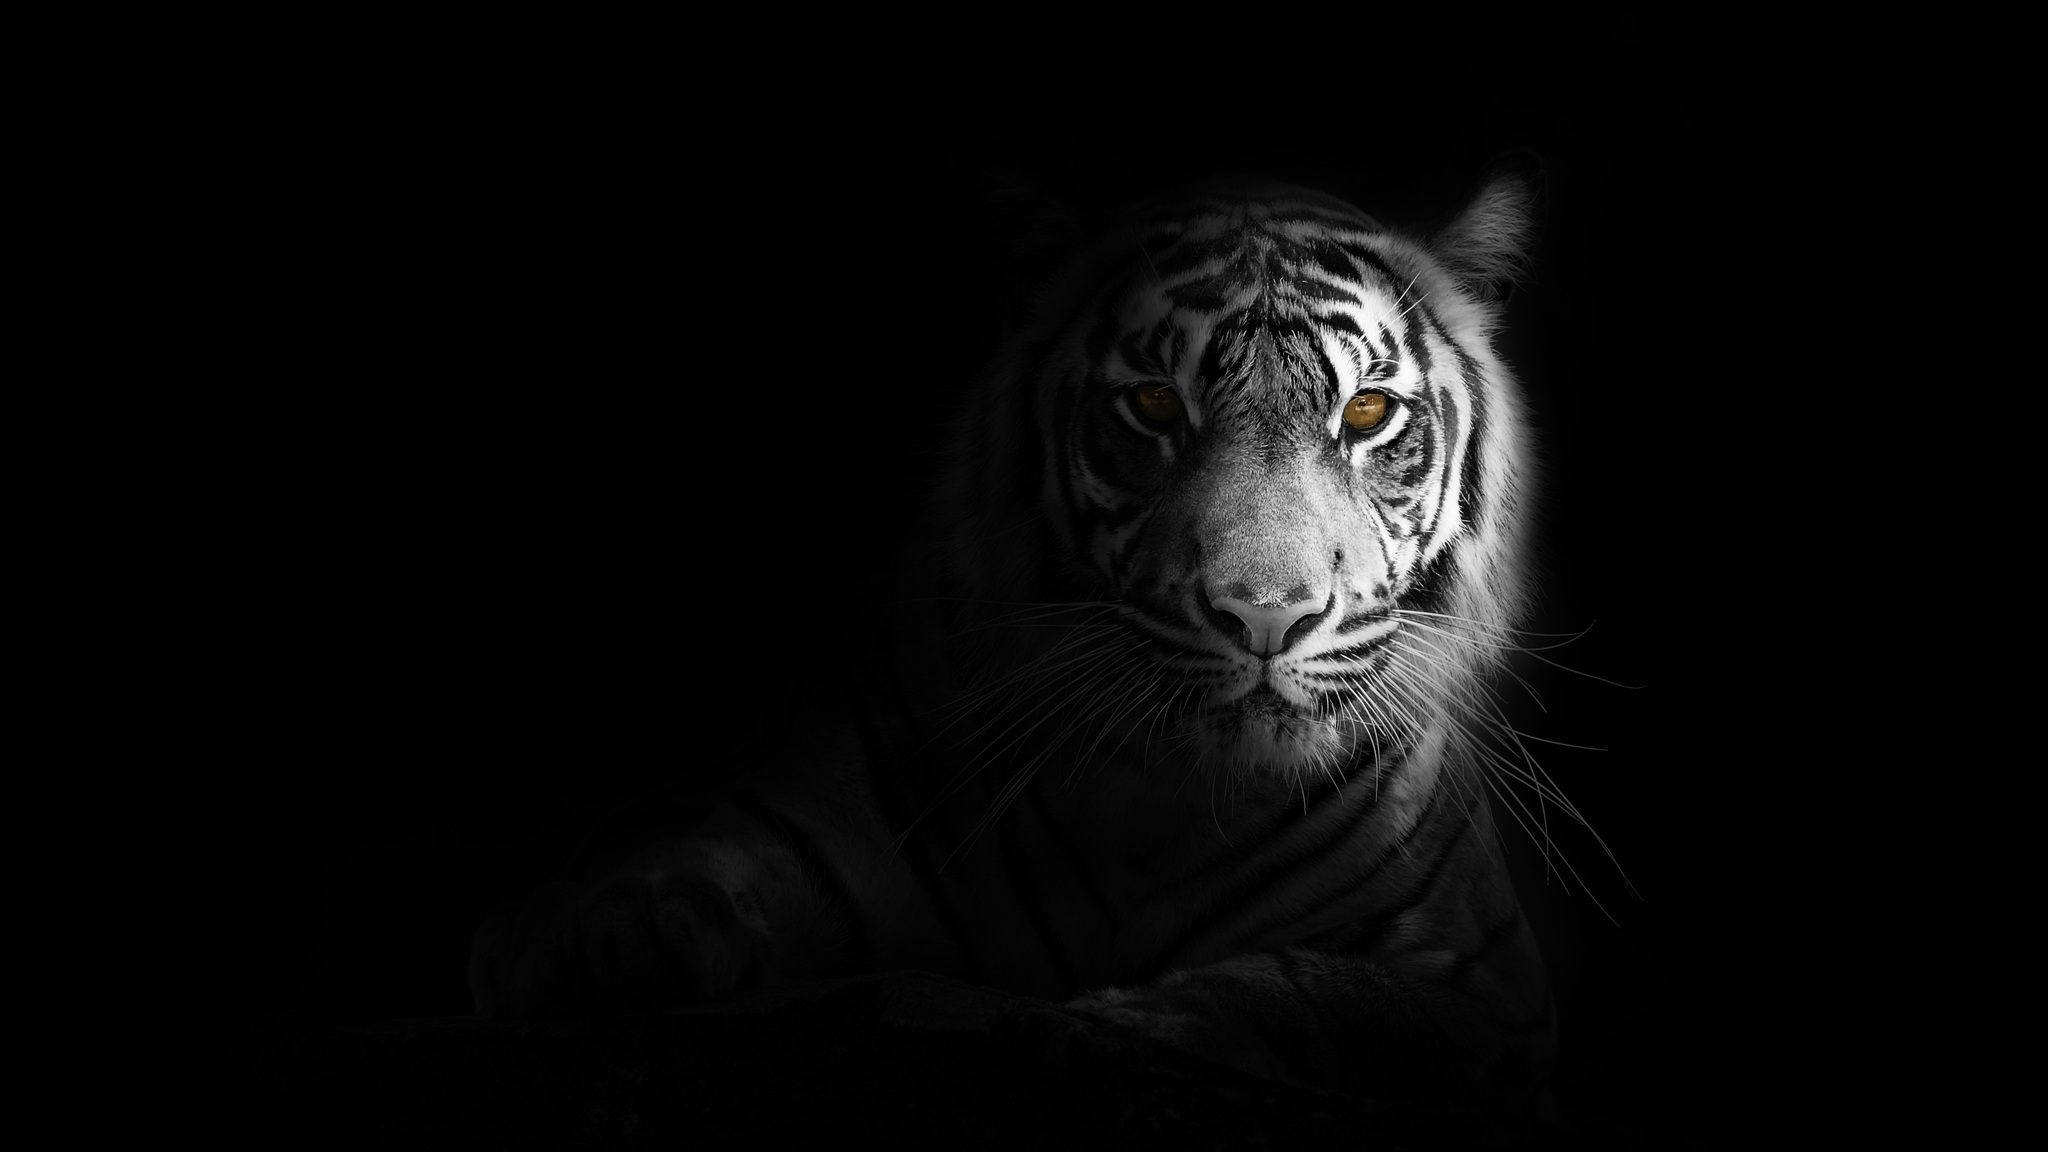 2048x1152 Big Cat Tiger 4k 2048x1152 Resolution Hd 4k Wallpapers Images Backgrounds Photos And Pictures